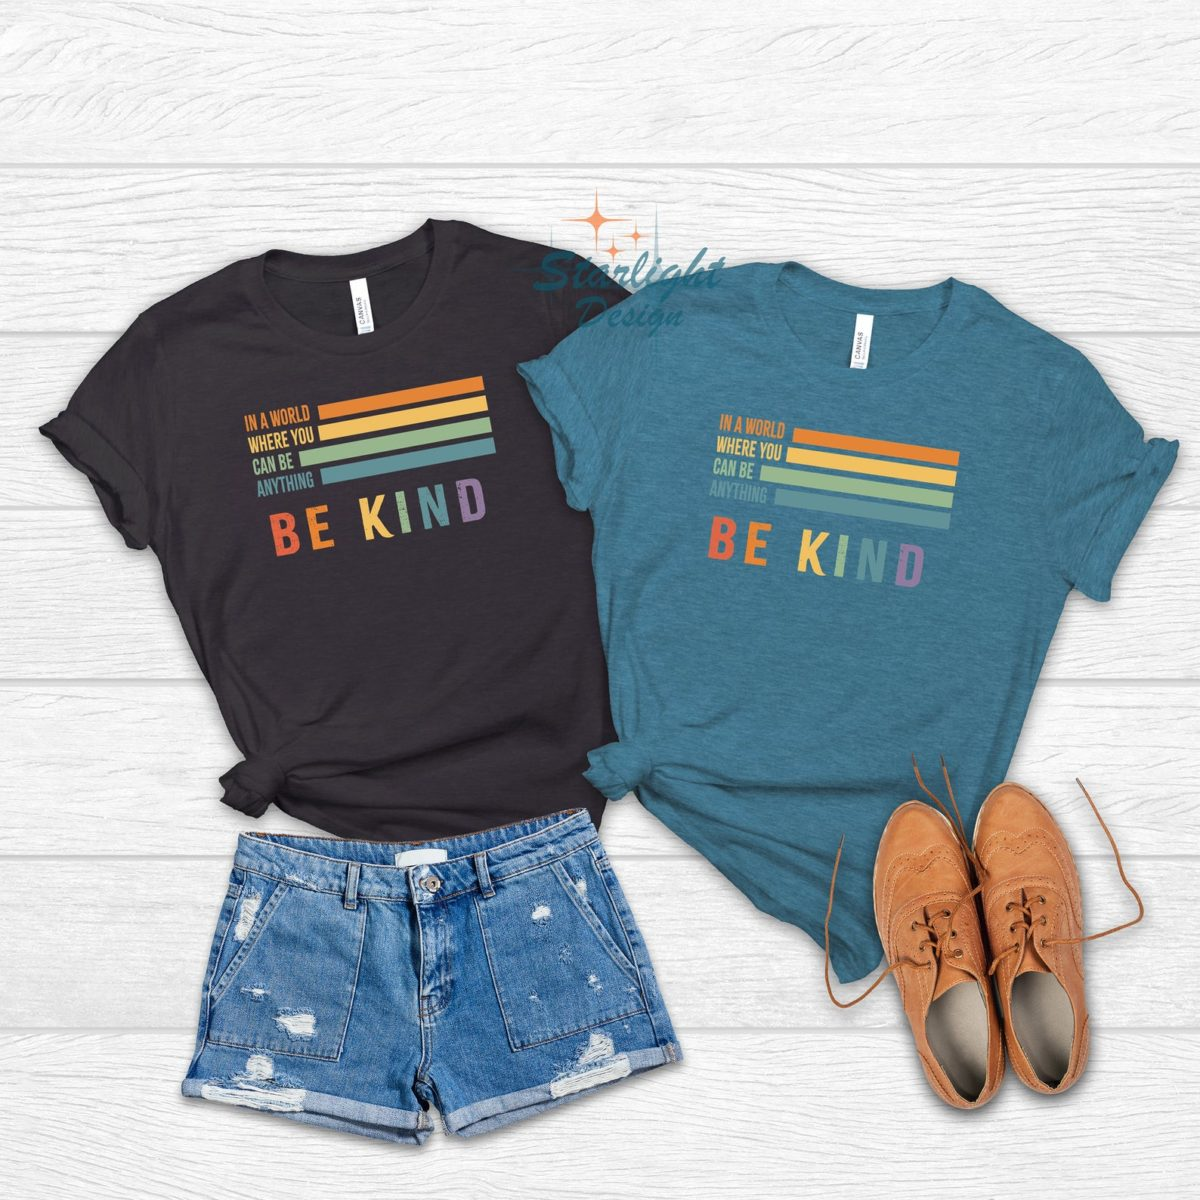 26 awesome etsy t-shirts that send a positive message and make great gifts | parenting questions | mamas uncut il 1588xn.2794020588 fqkv